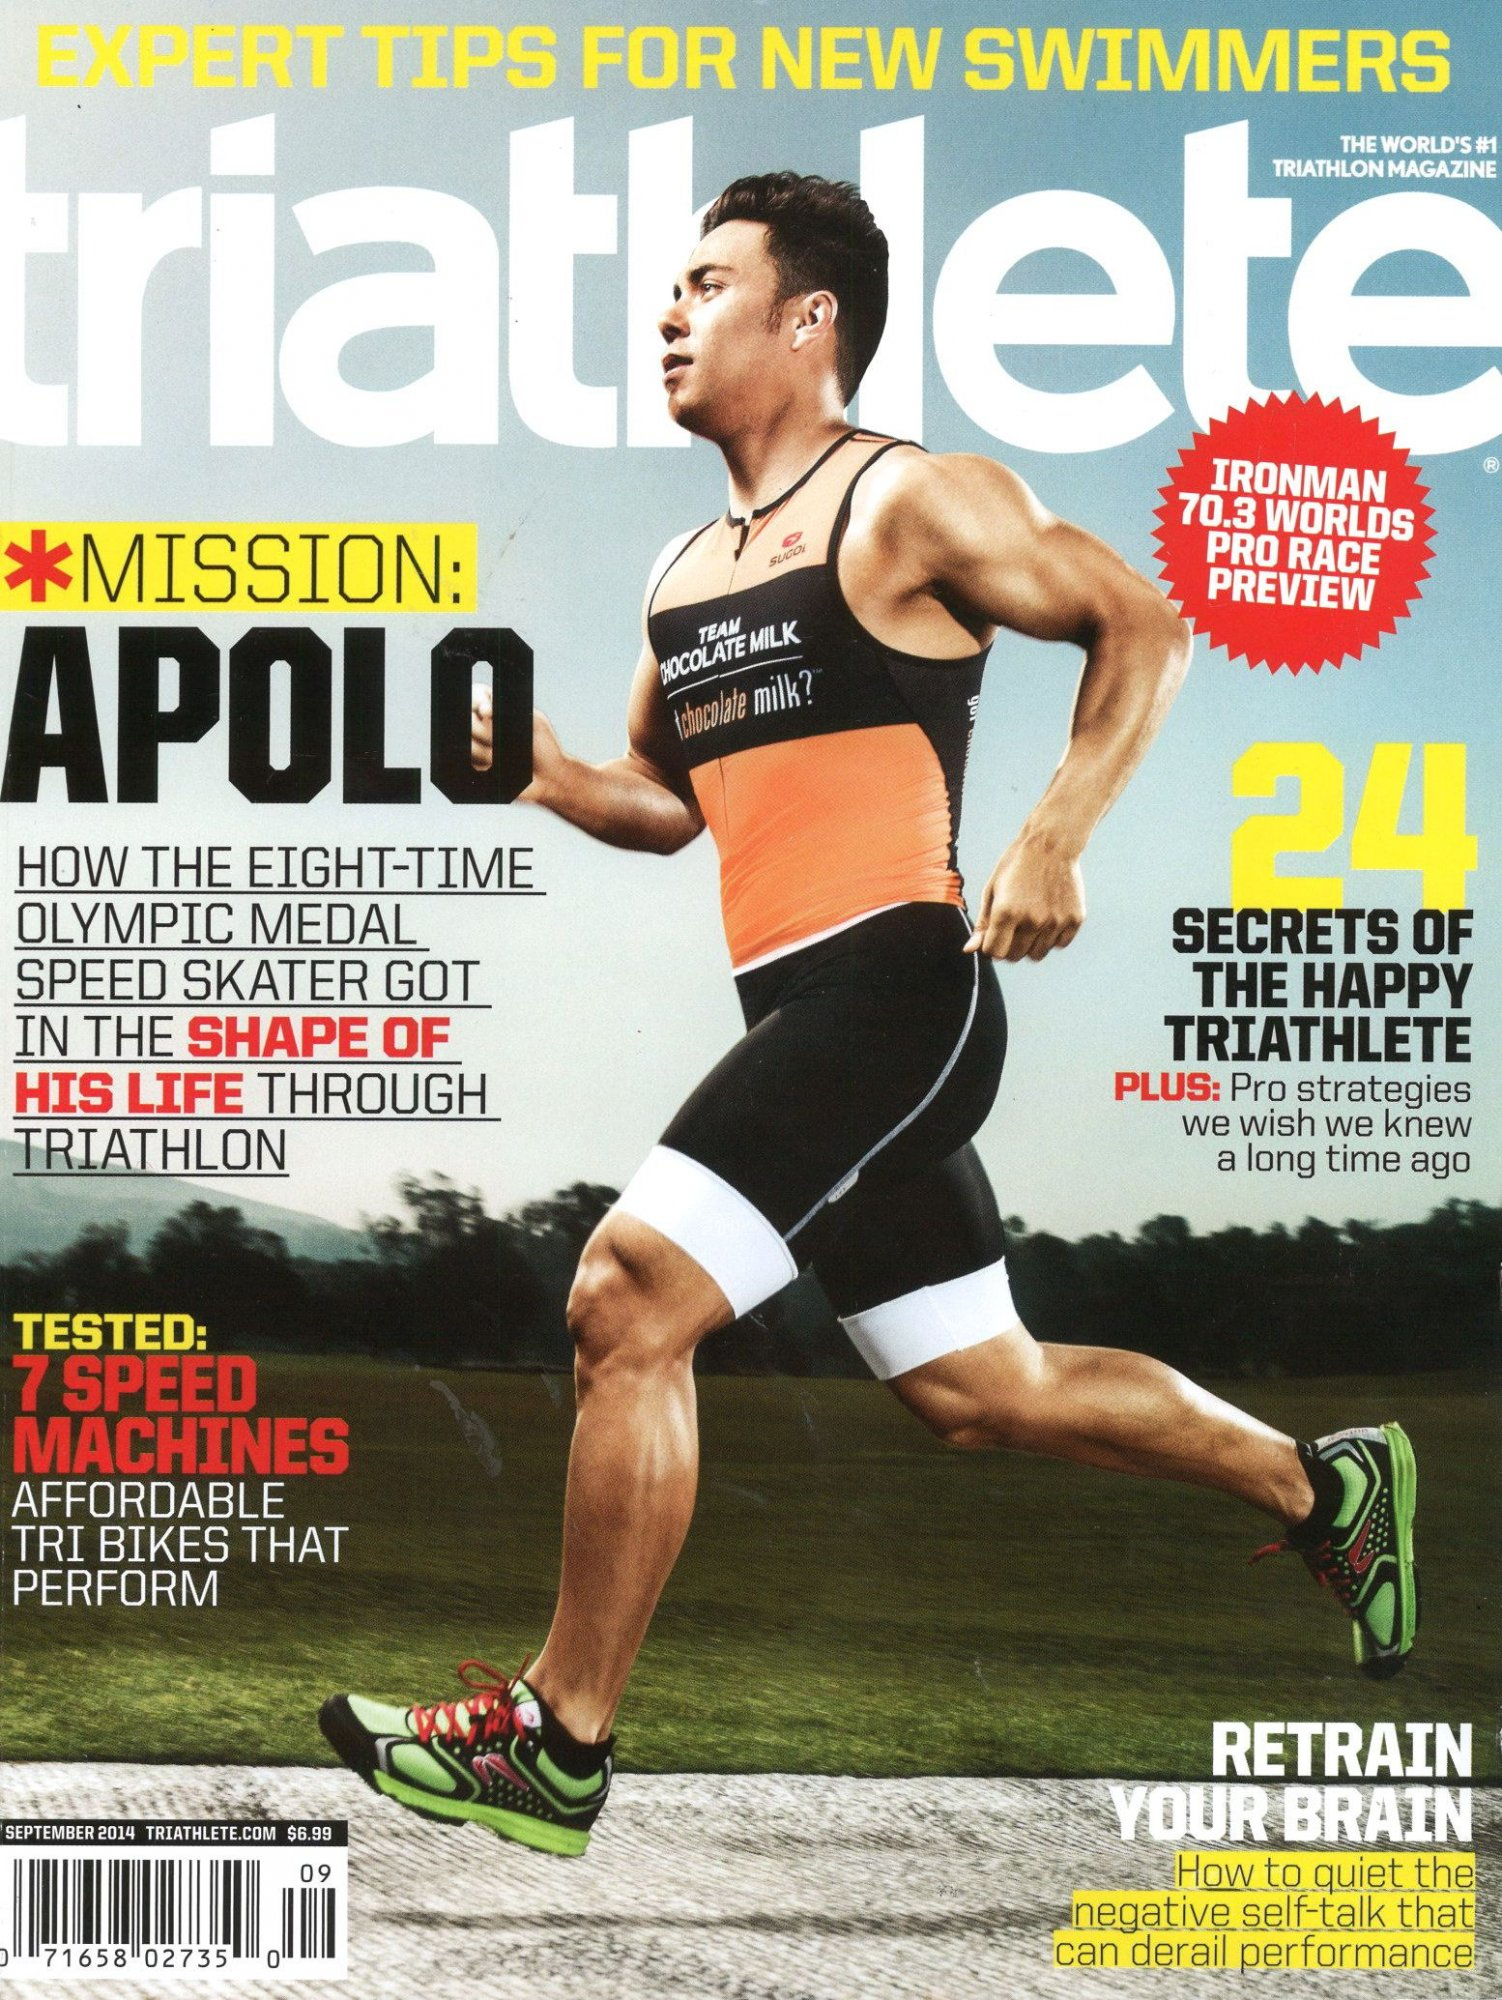 September 2014 Triathlete Cover